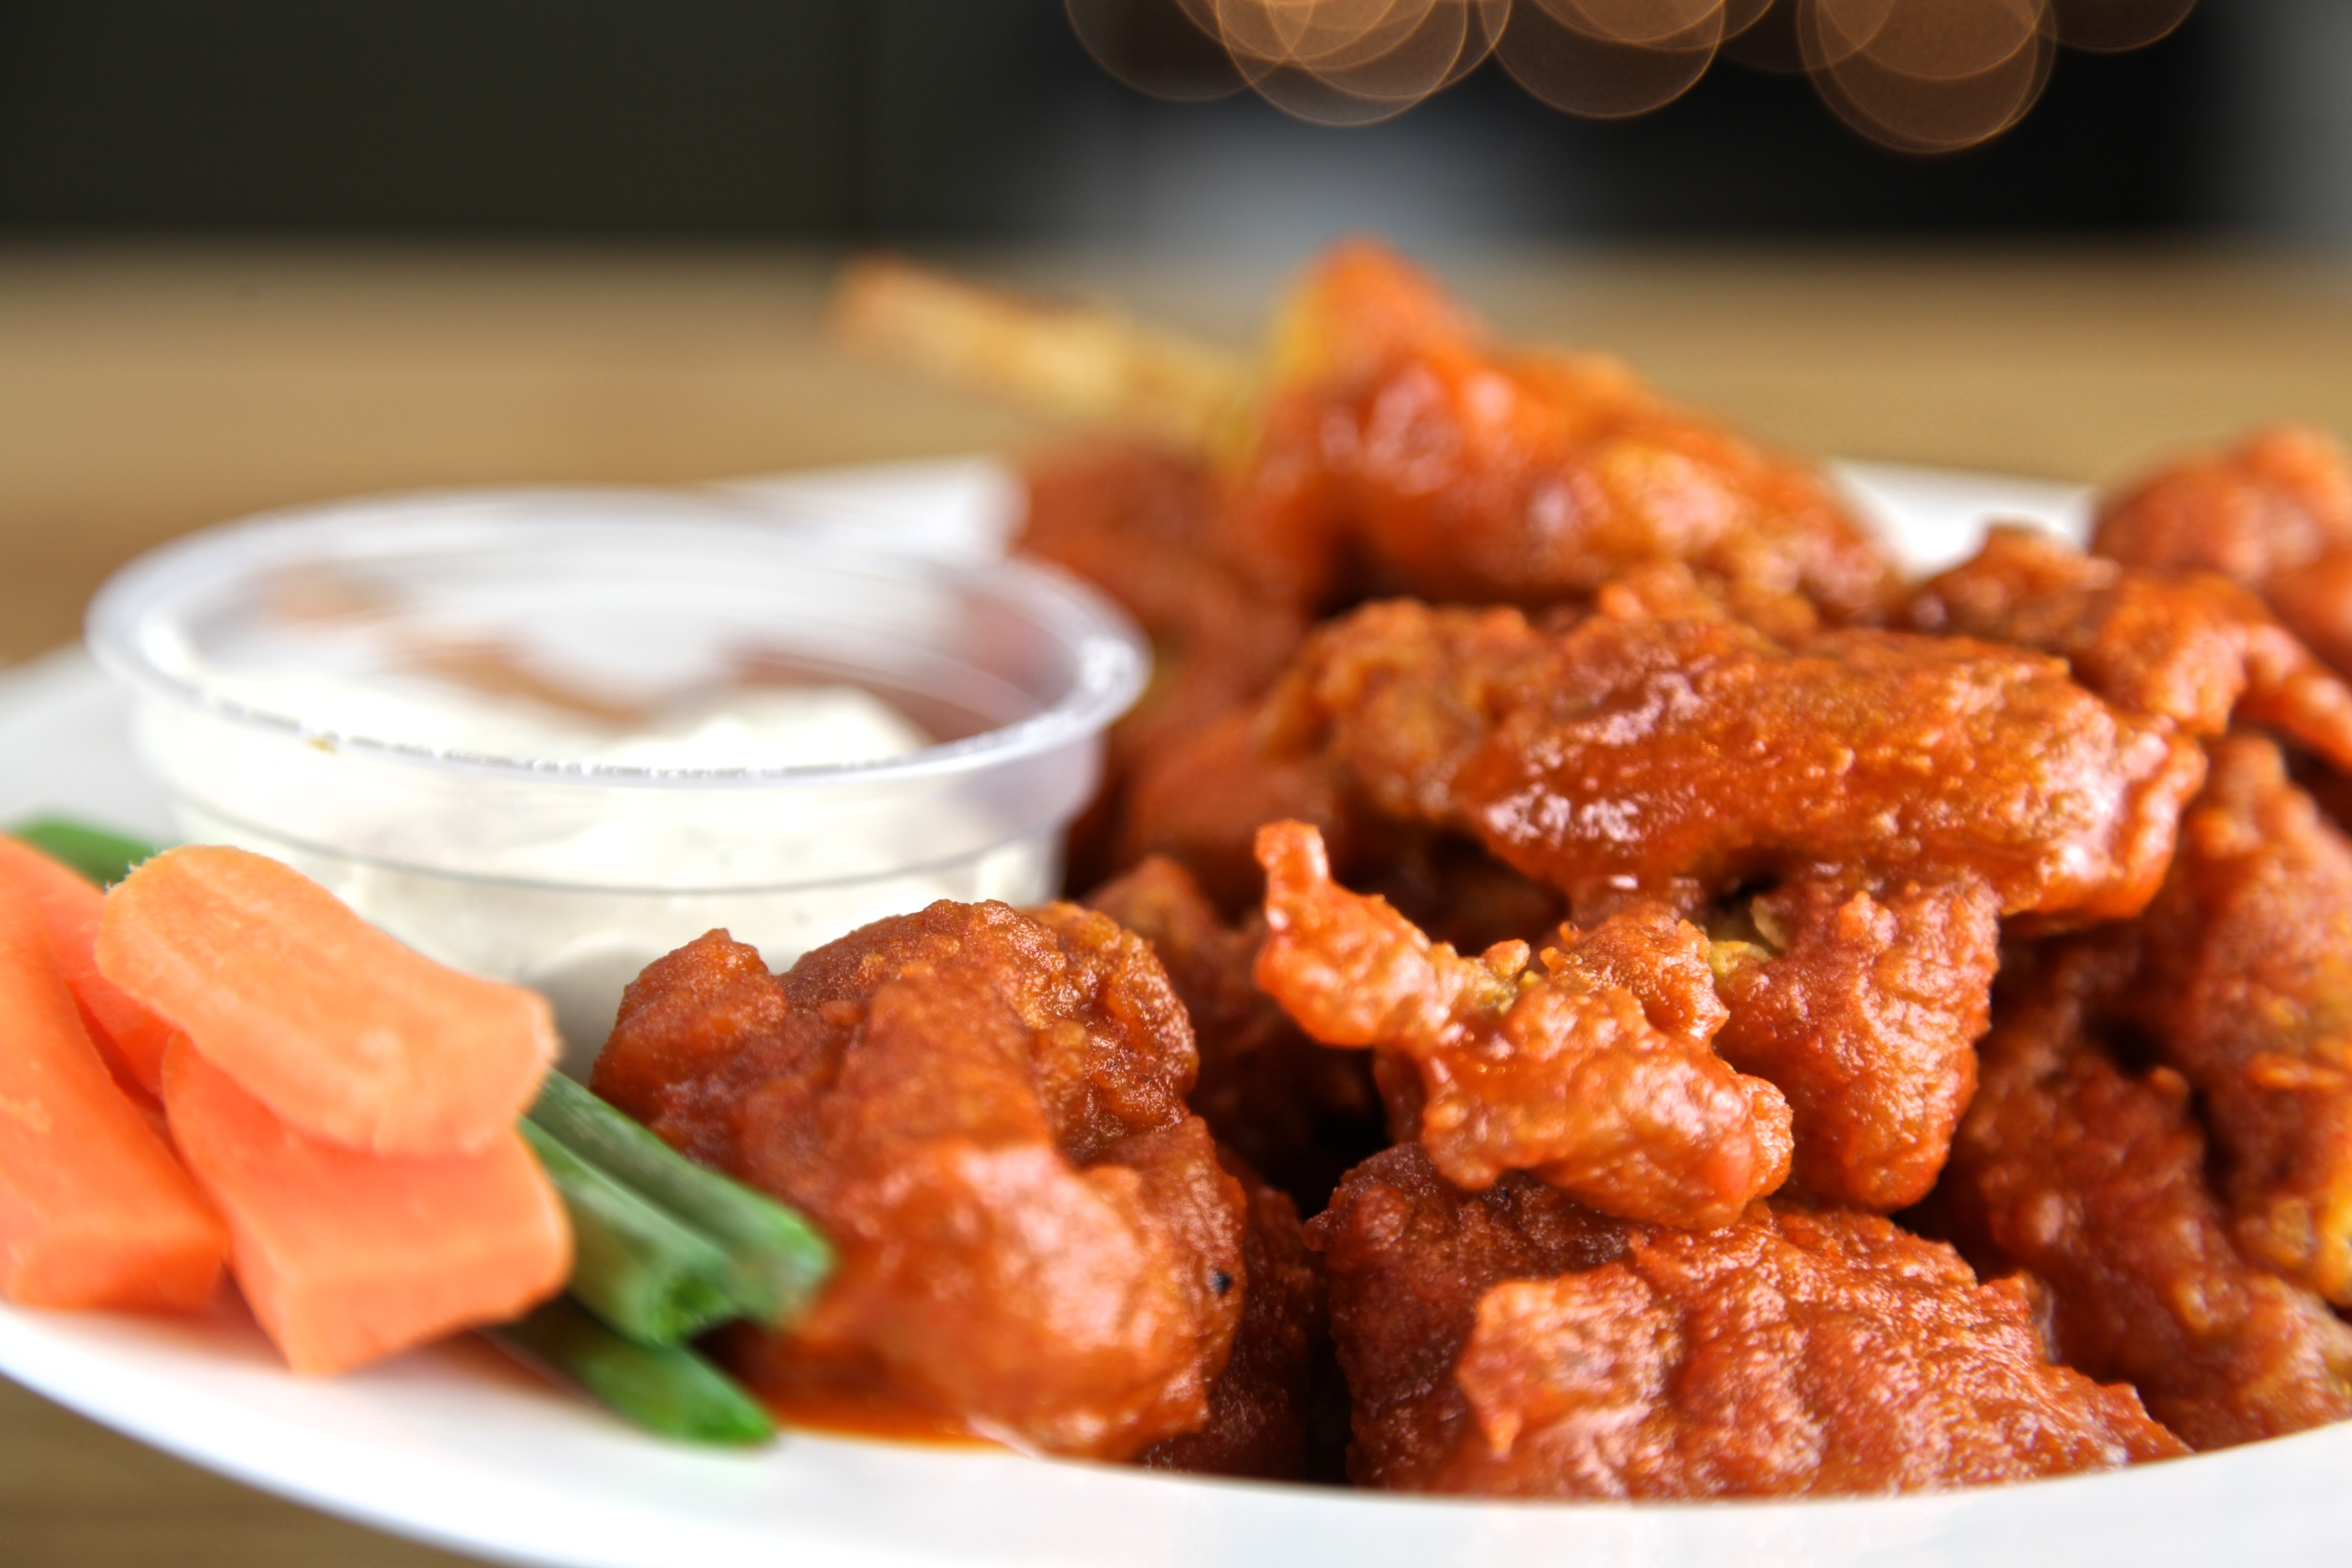 Jul 20,  · Better Than Hot Wings Café Air Fryer Buffalo Chicken Wings are better for your wallet and easily prepared in the air fryer in about 30 minutes.. Better Than Hot Wings Café Air Fryer Buffalo Chicken Wings.